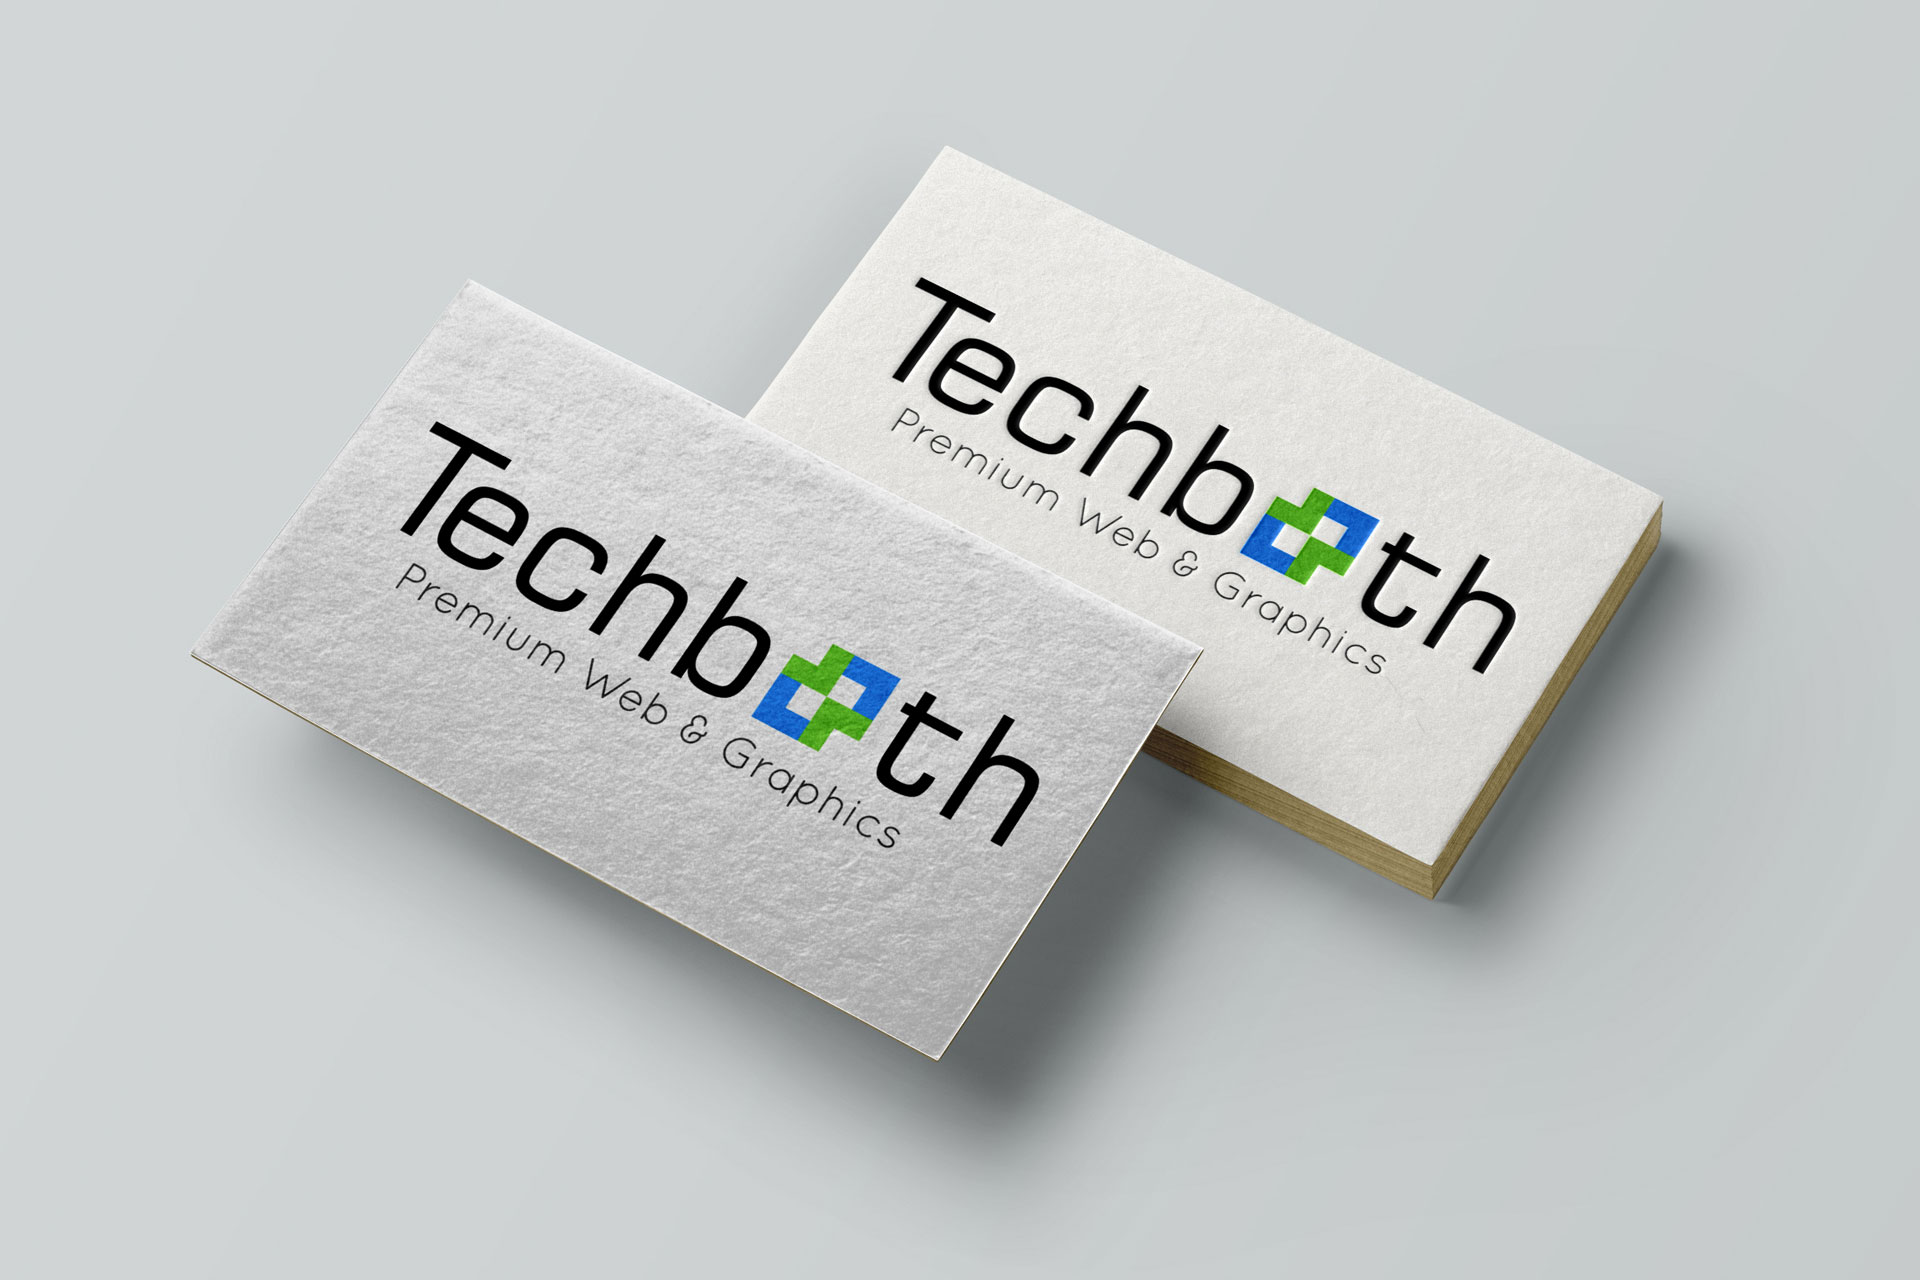 TechBooth - Graphic Design Portfolio